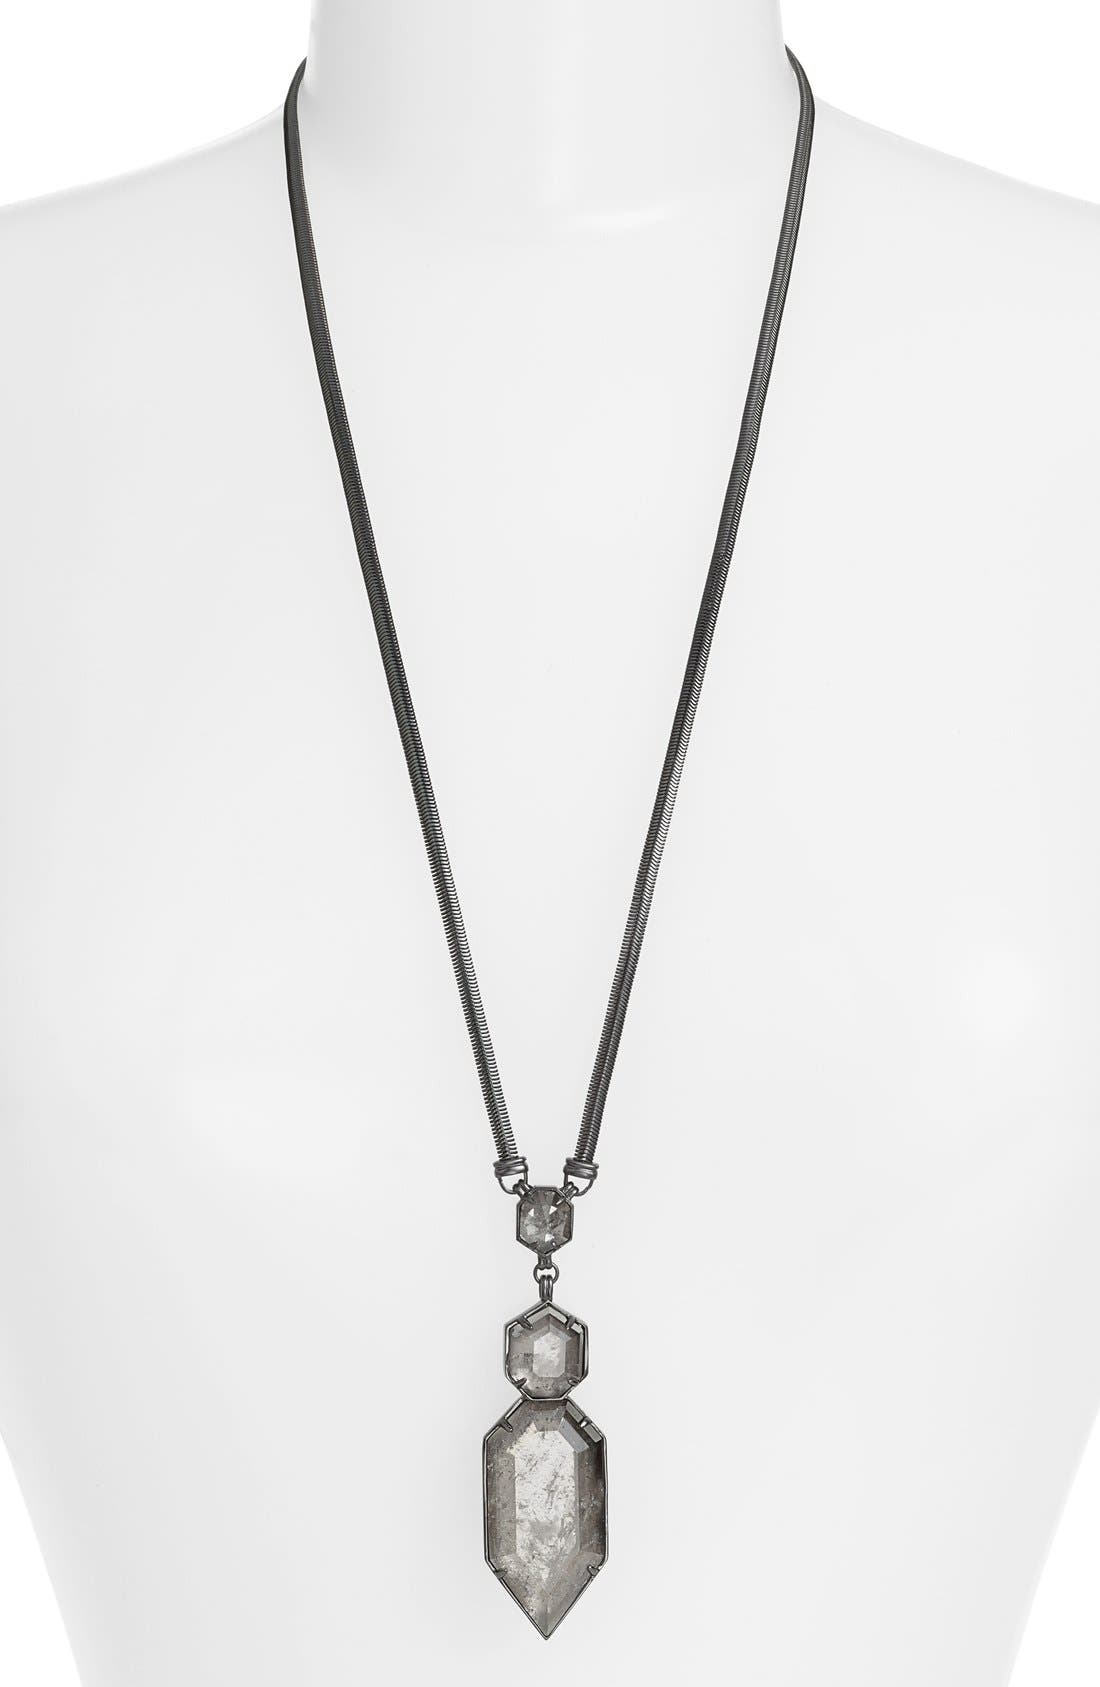 Alternate Image 1 Selected - Kendra Scott 'Wyatt' Pendant Necklace